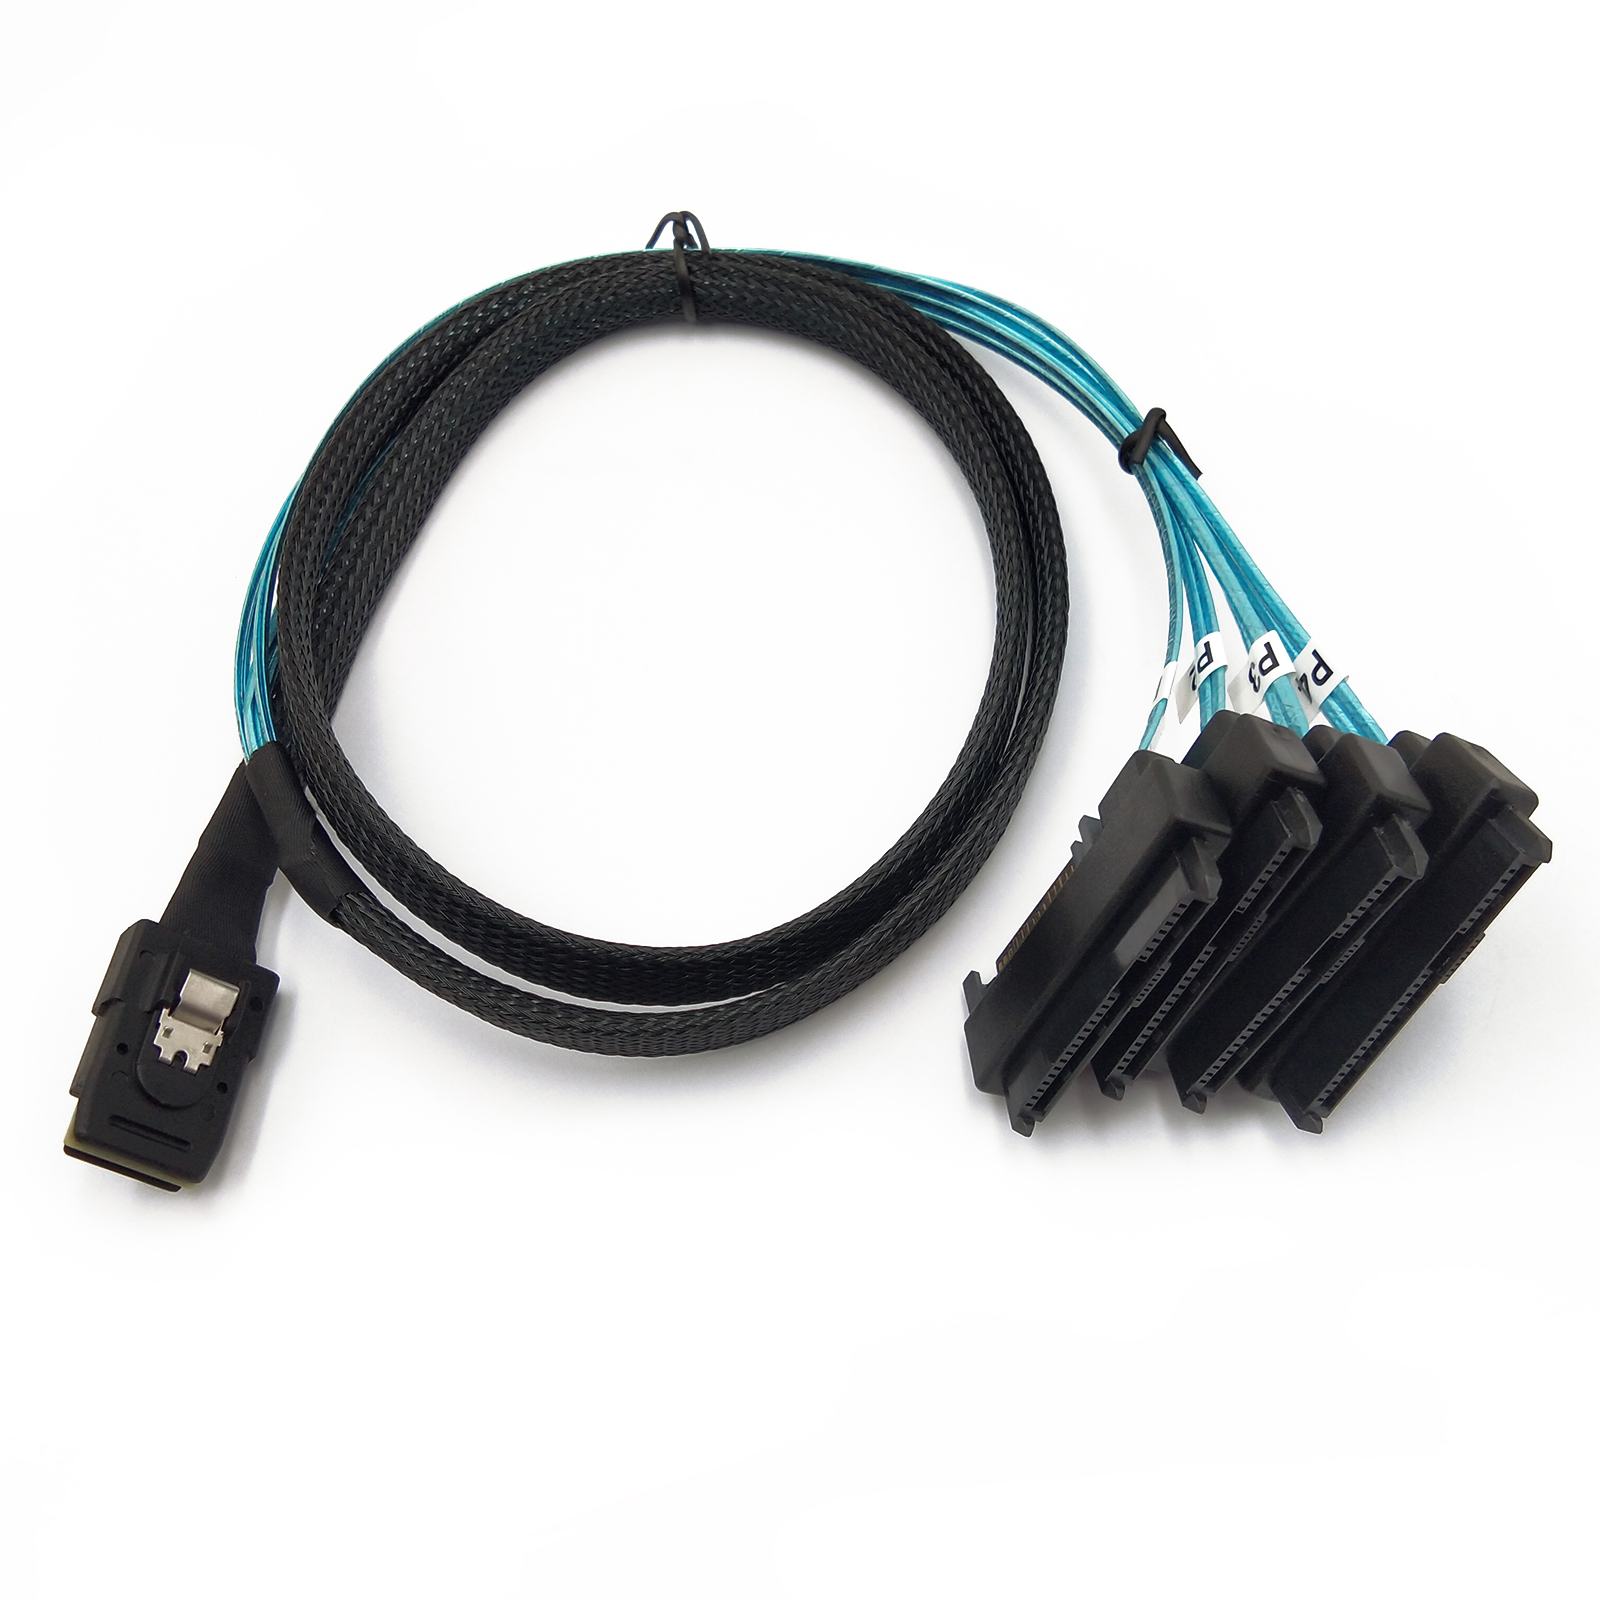 Standard Mini SAS Power Mini-SAS SFF-8087 to 4x SFF-8482 with 4x Data Cable 1M